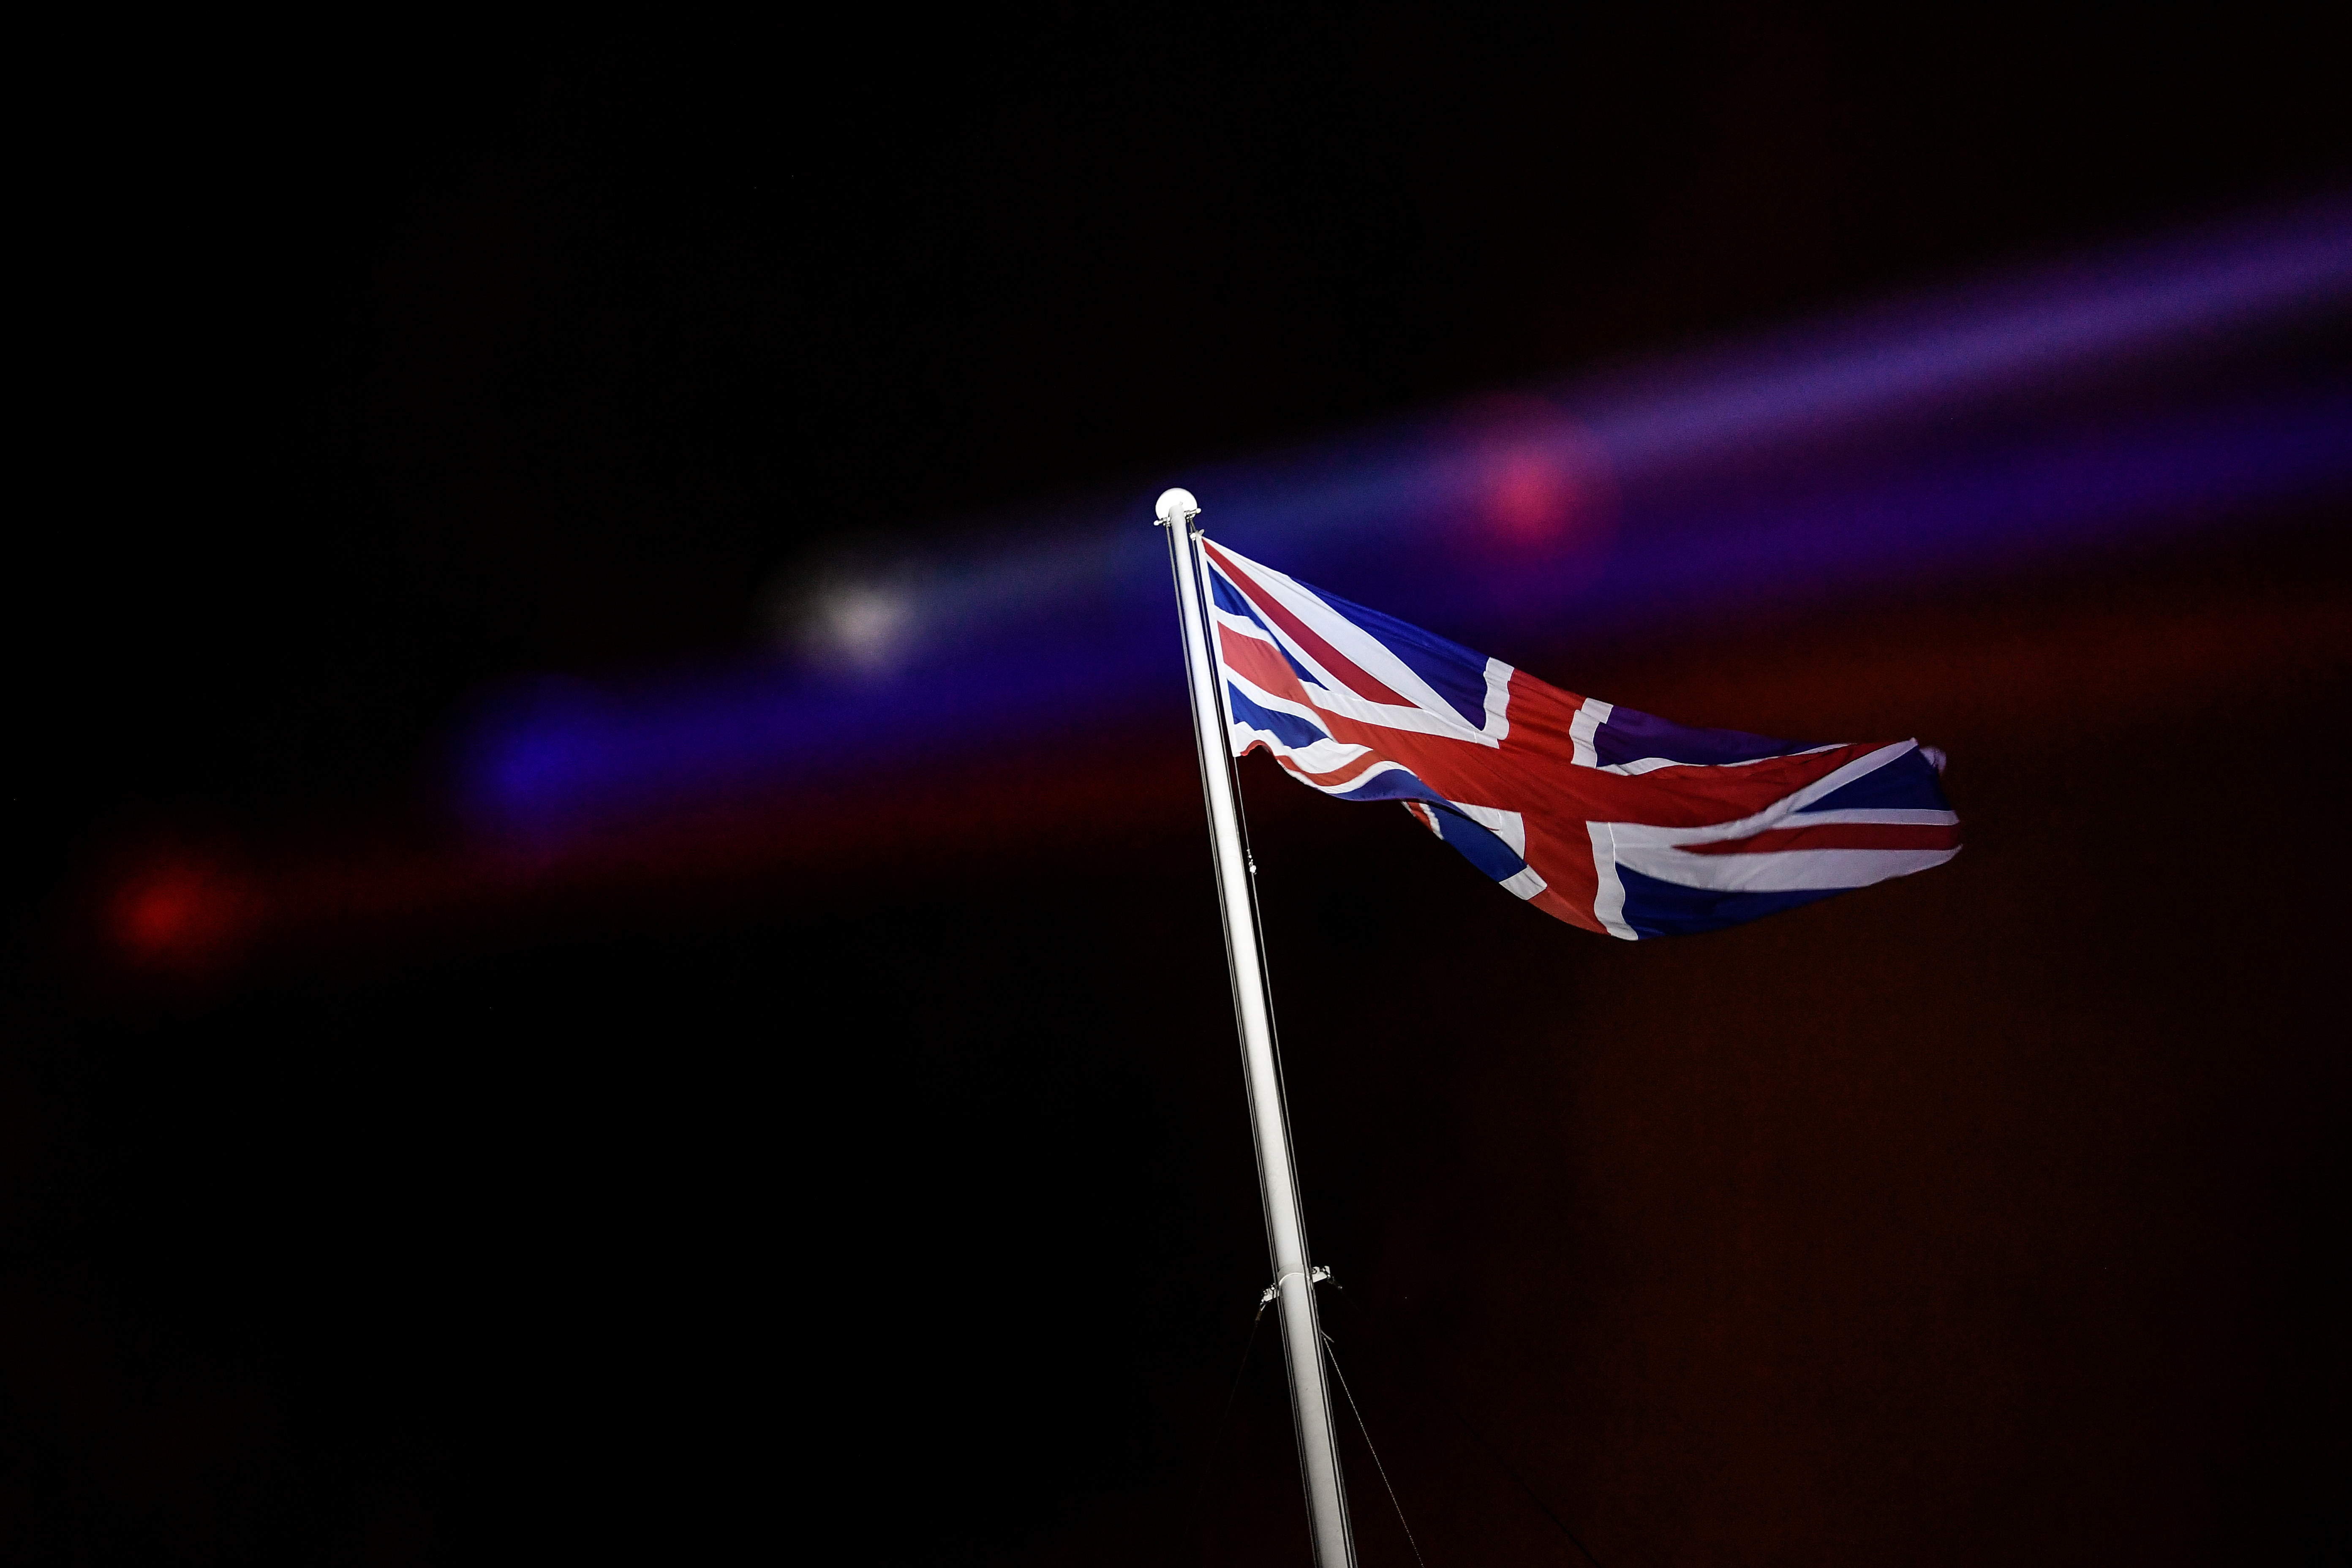 An illuminated British flag is seen at 10 Downing Street on Brexit day in London, Britain January 31, 2020. REUTERS/Toby Melville